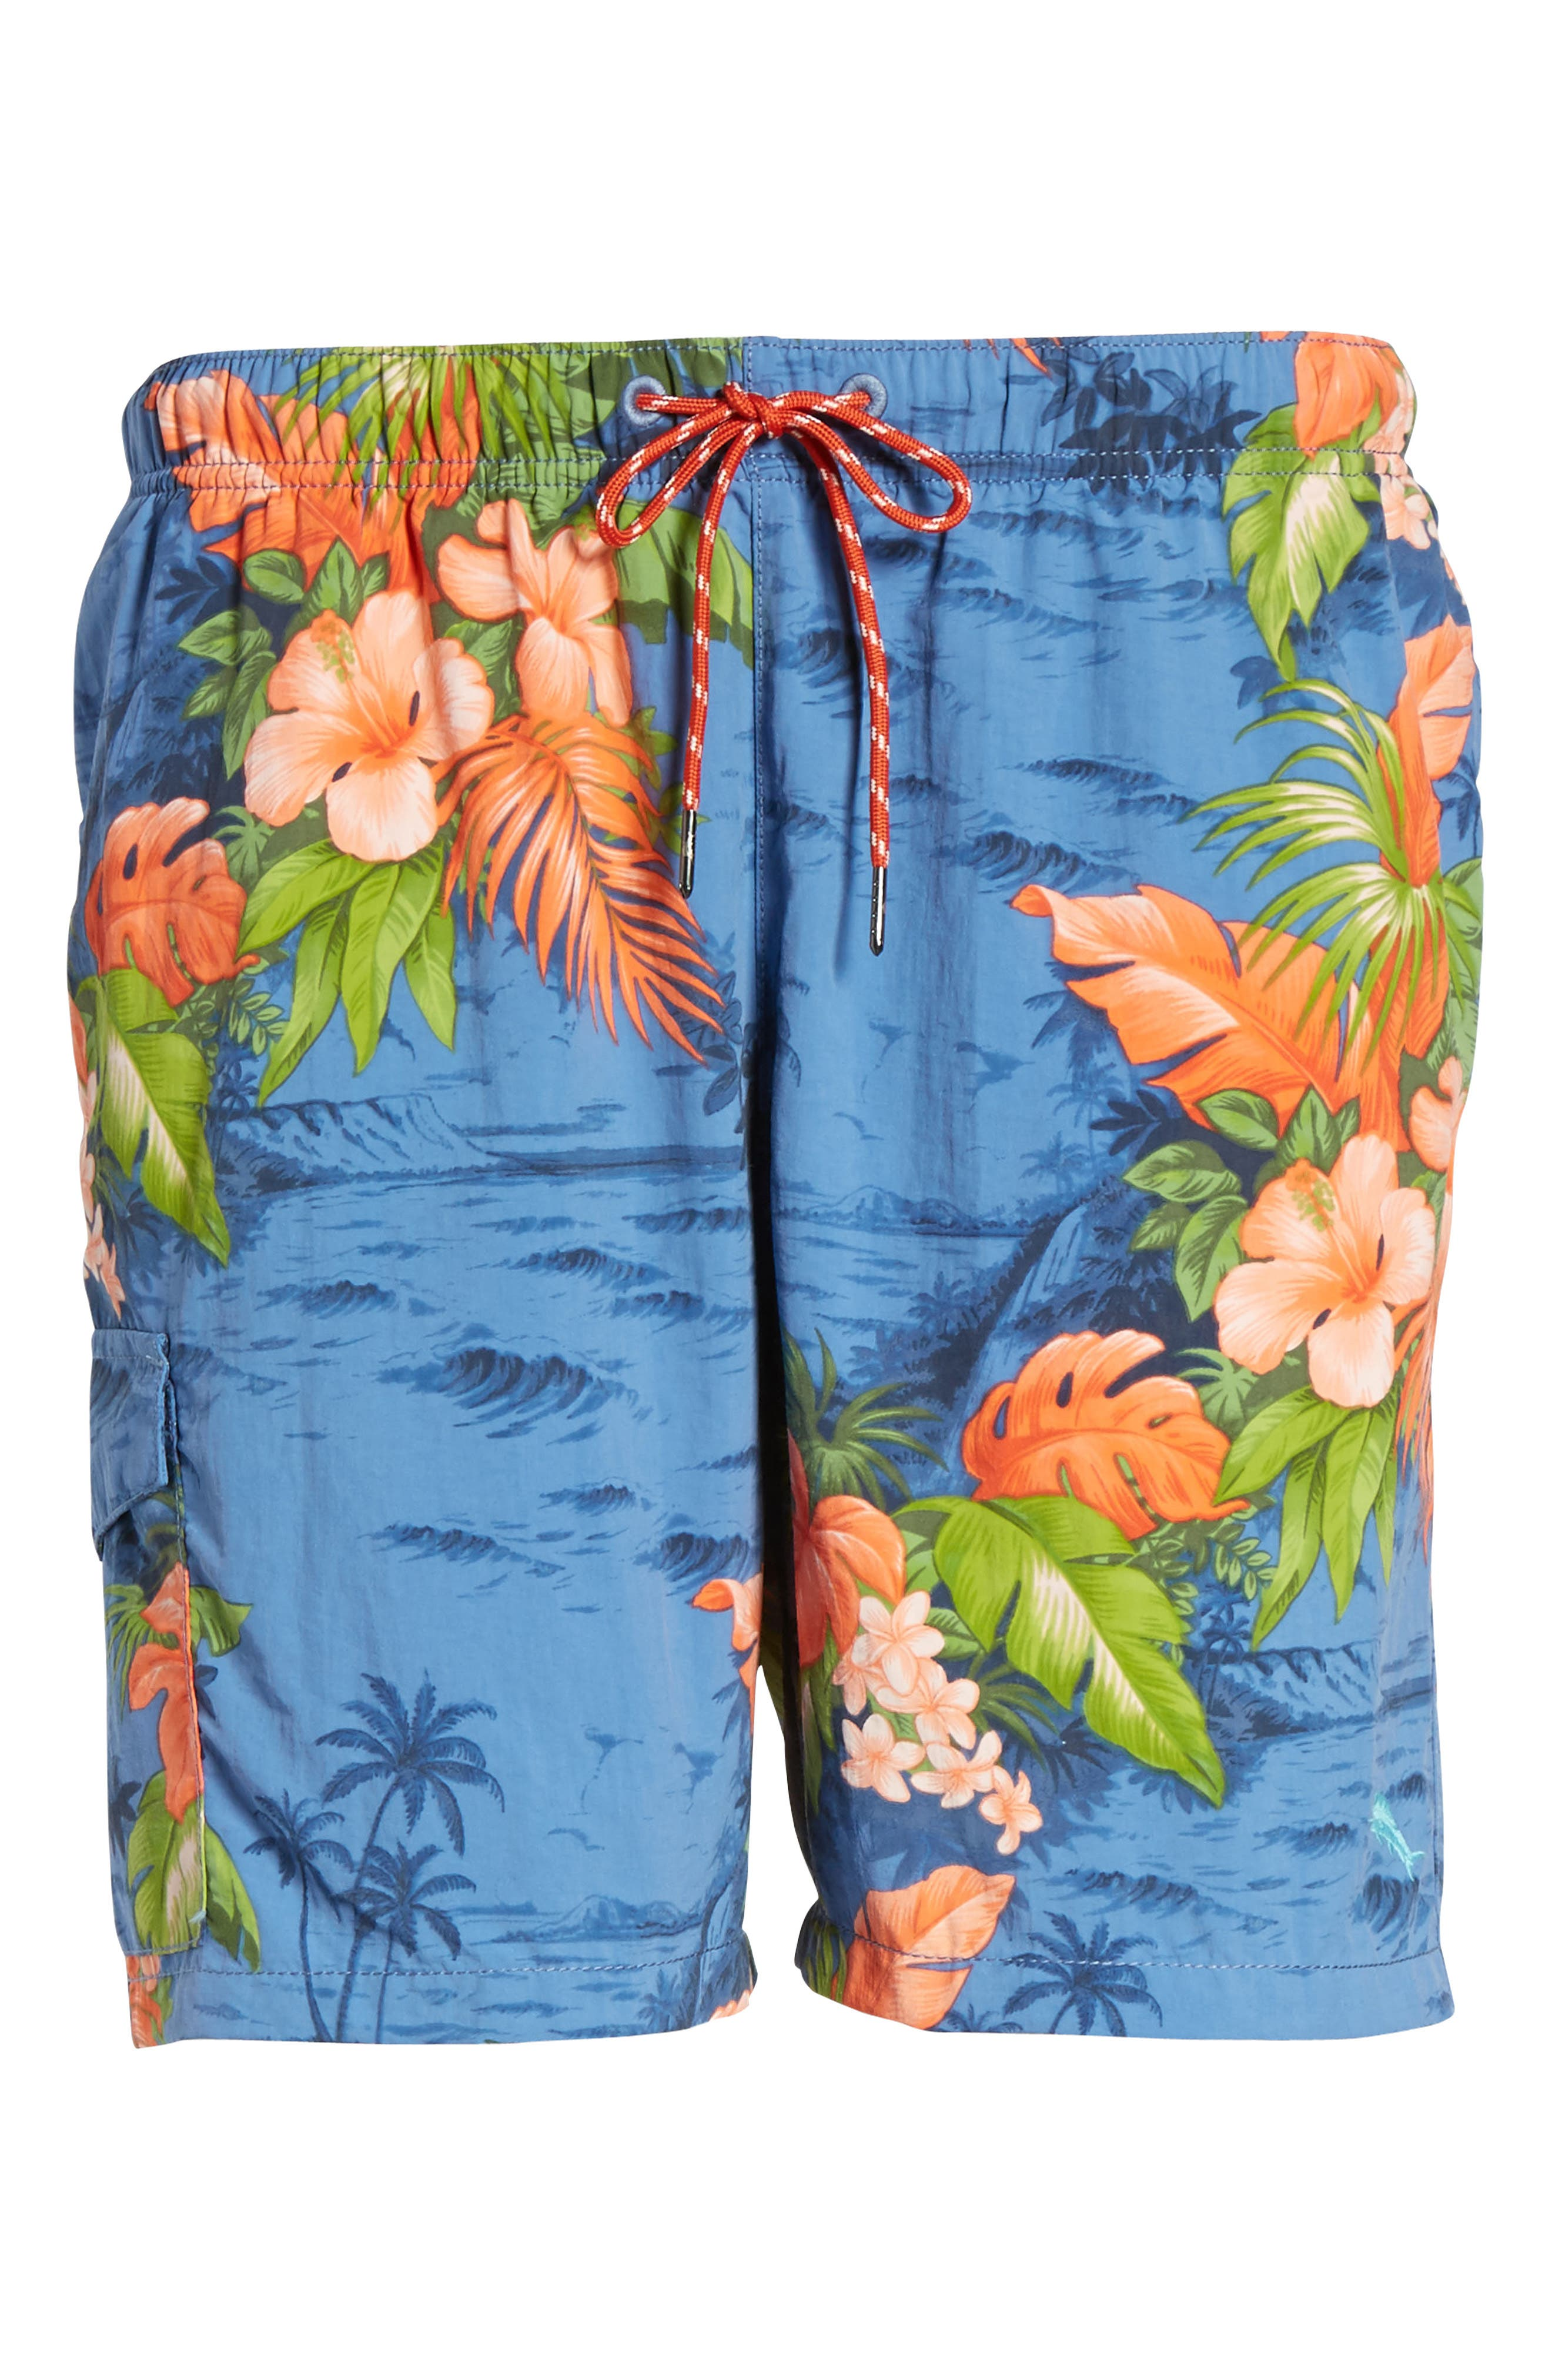 Naples Fiji Ferns Swim Trunks,                             Alternate thumbnail 6, color,                             400